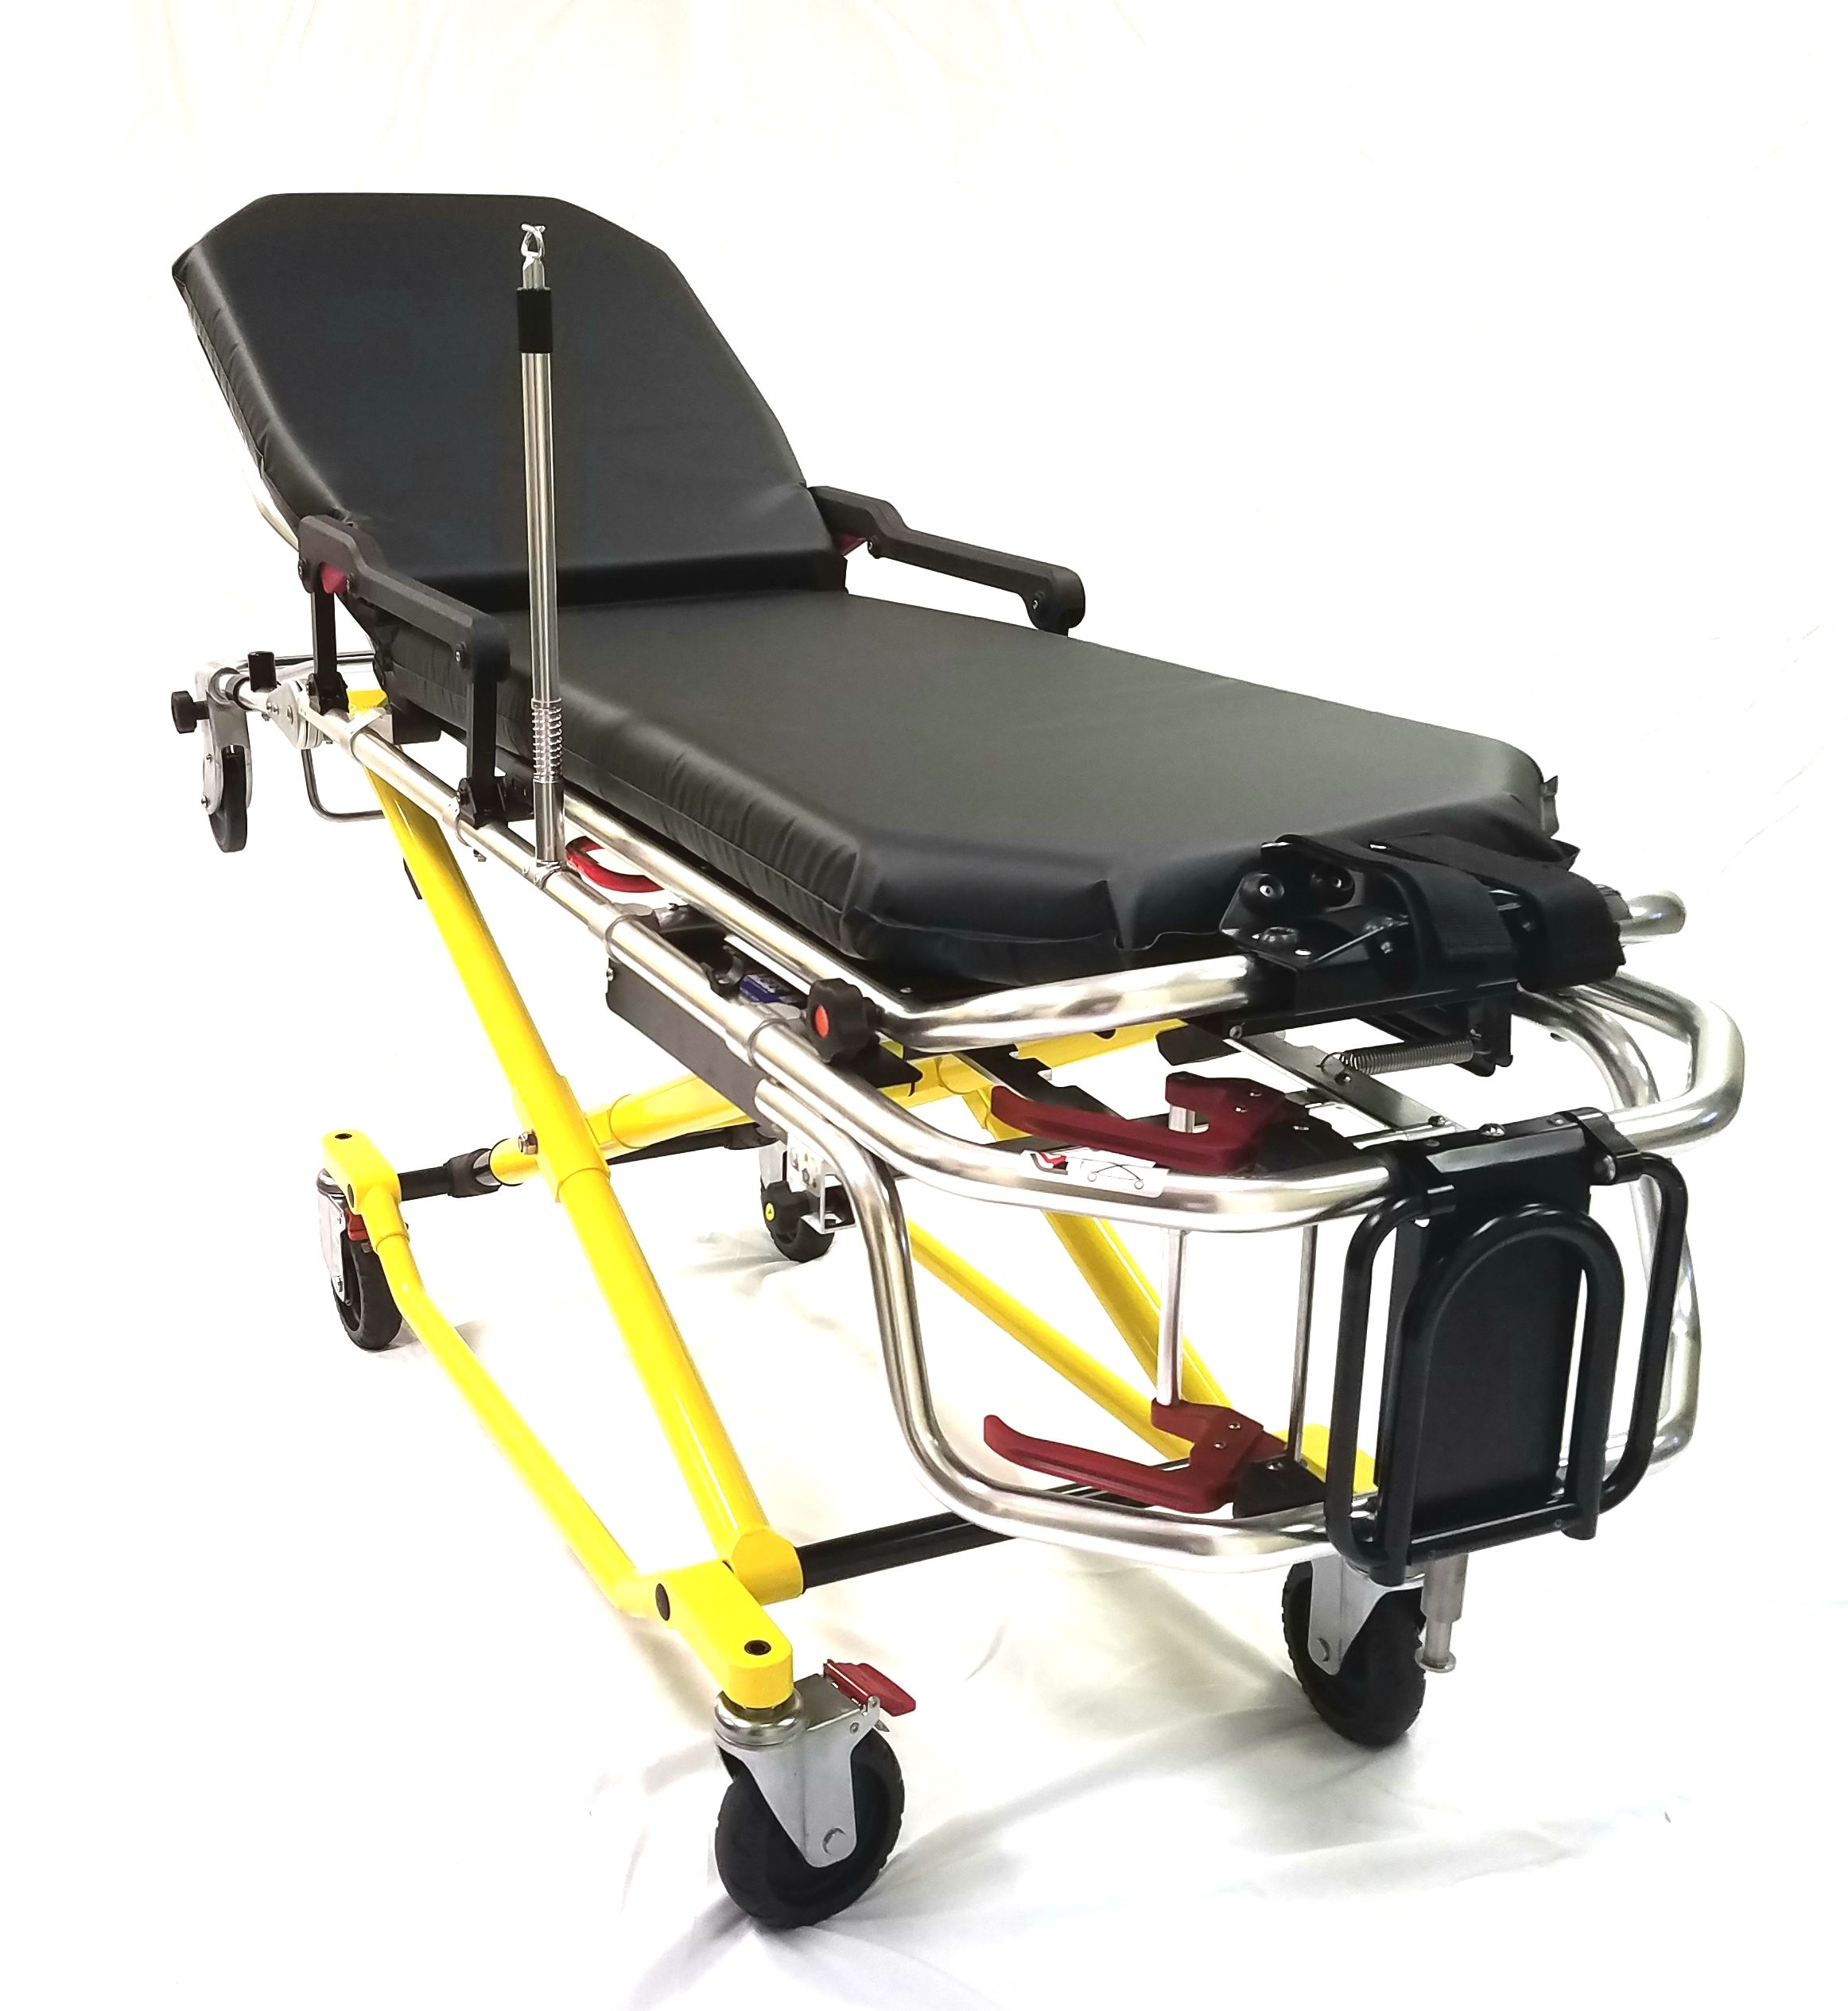 Commercial Pro-X Frame EMS Stretcher